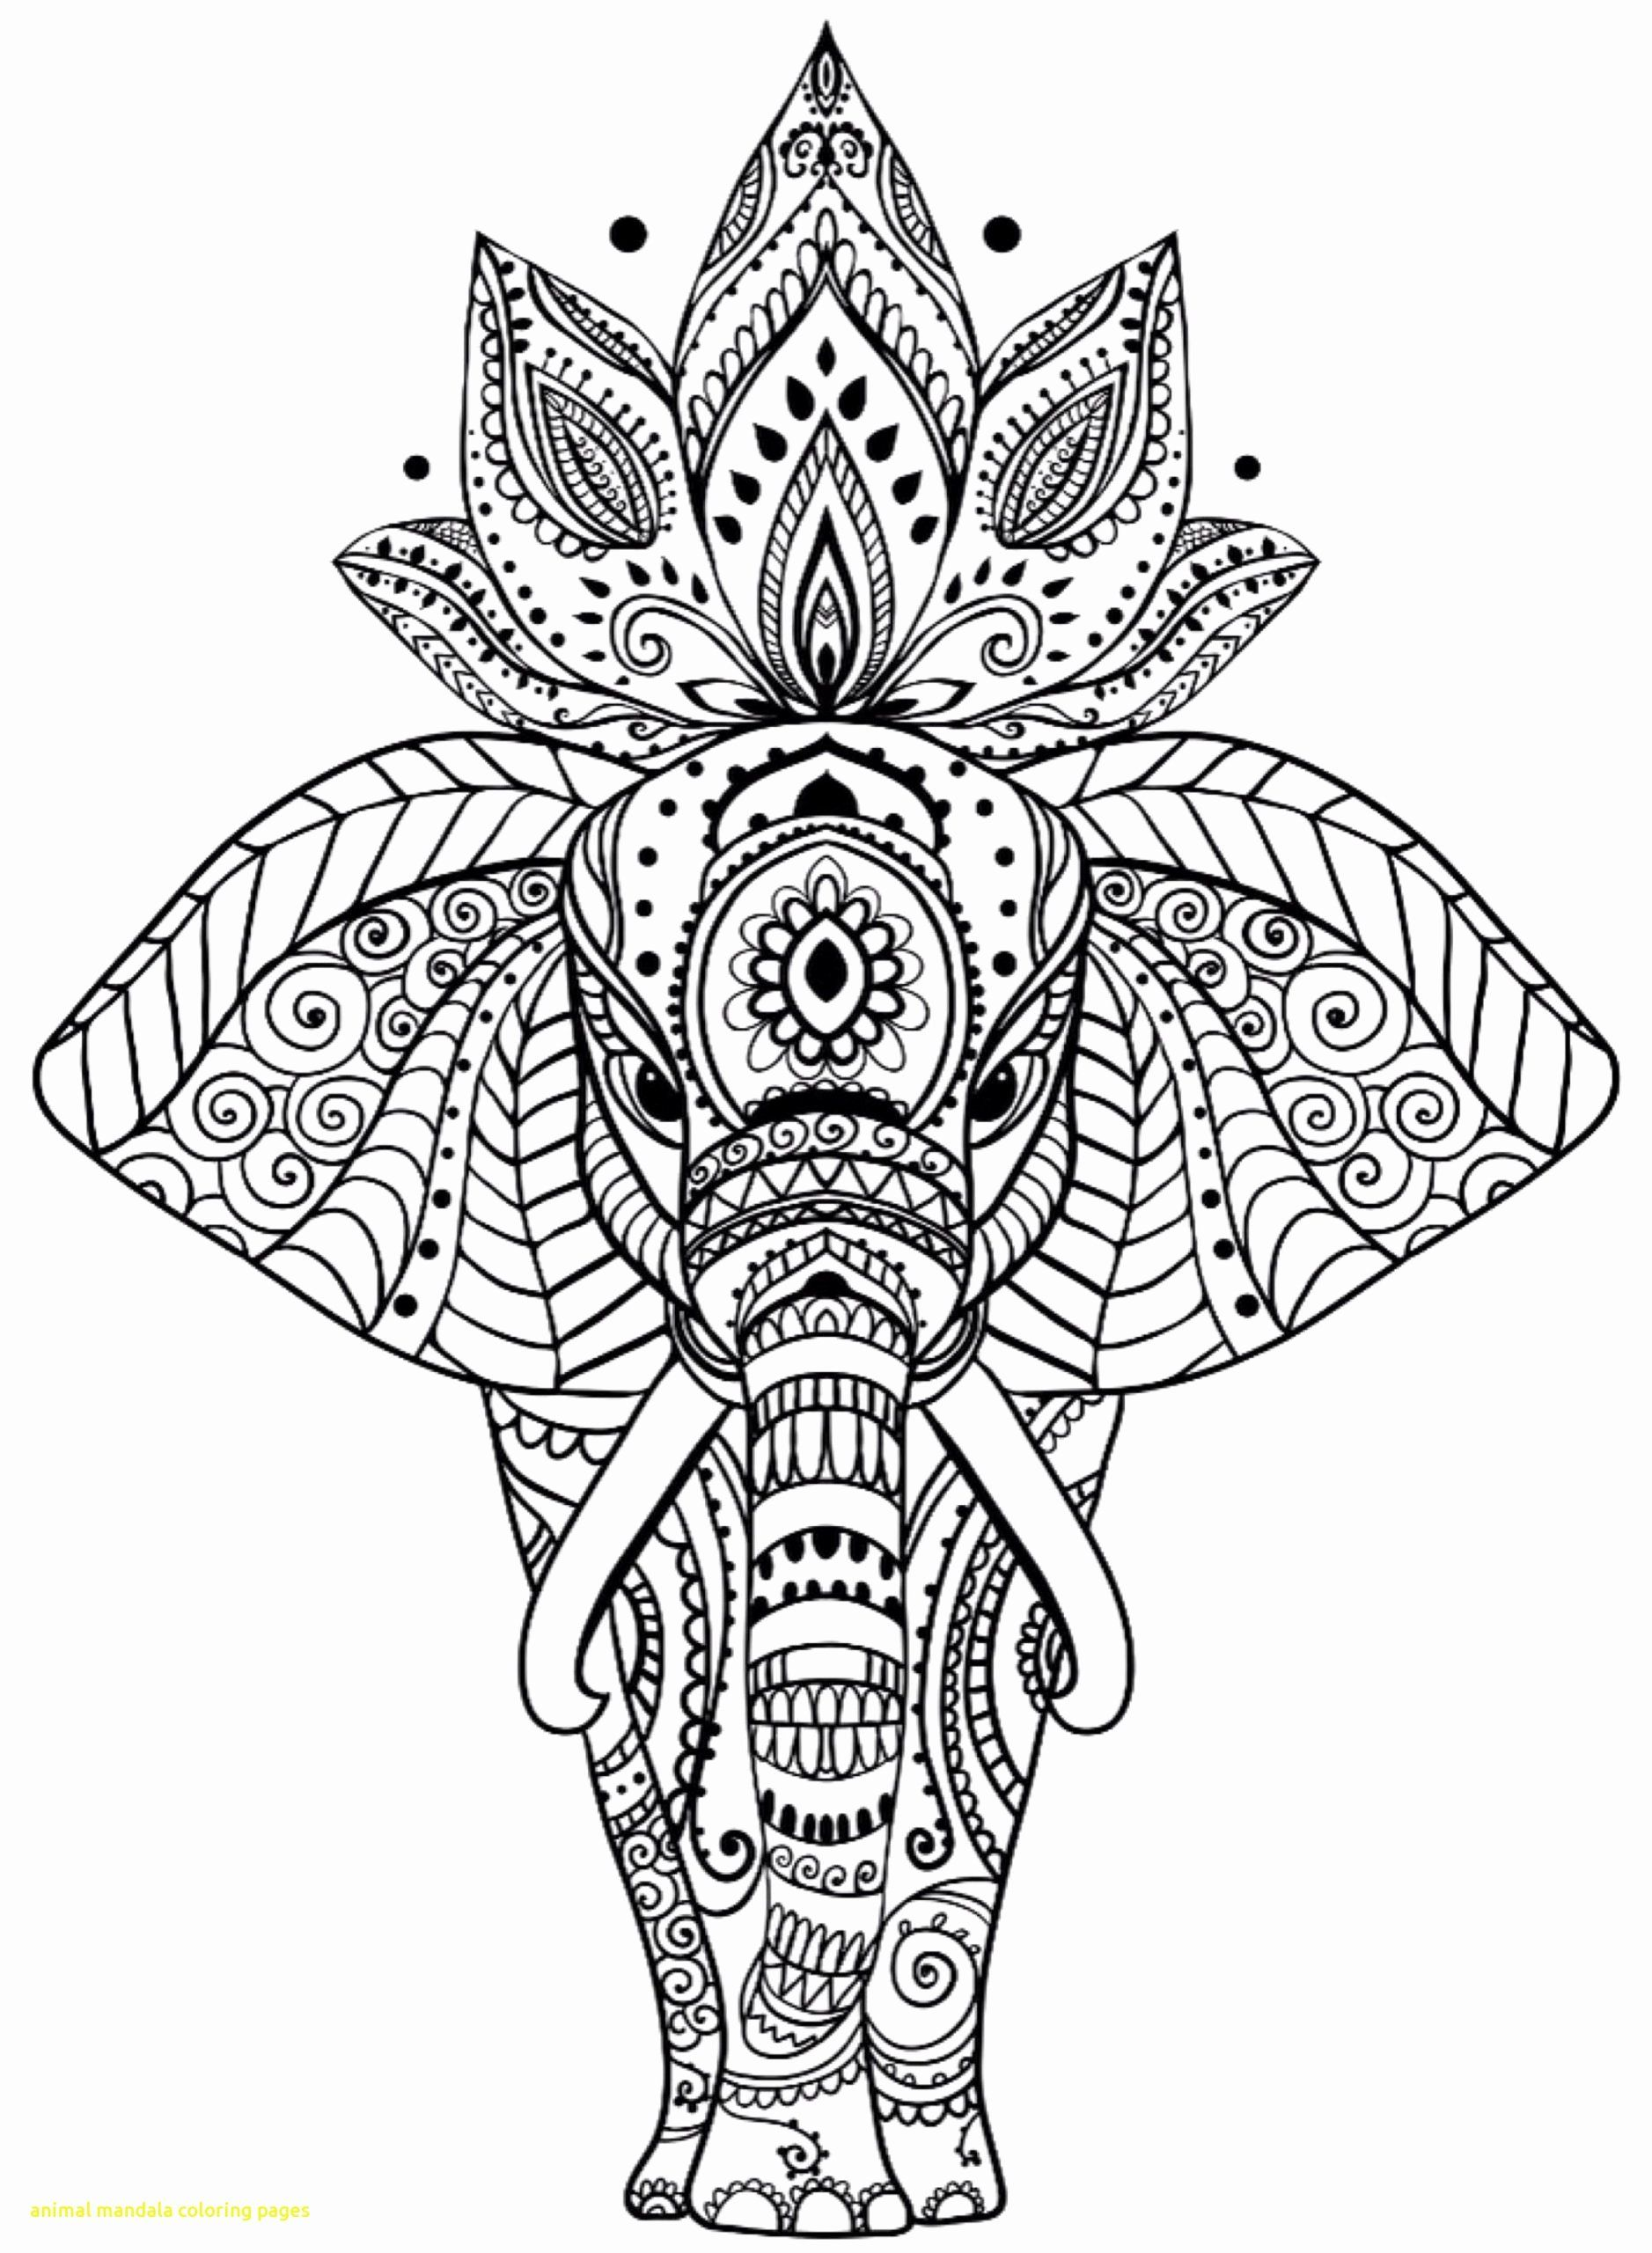 Complex Animal Coloring Pages Best Of Top 37 Magic Mandala Coloring Book For Adults Dungeons And In 2020 Mandala Coloring Pages Elephant Coloring Page Mandala Coloring